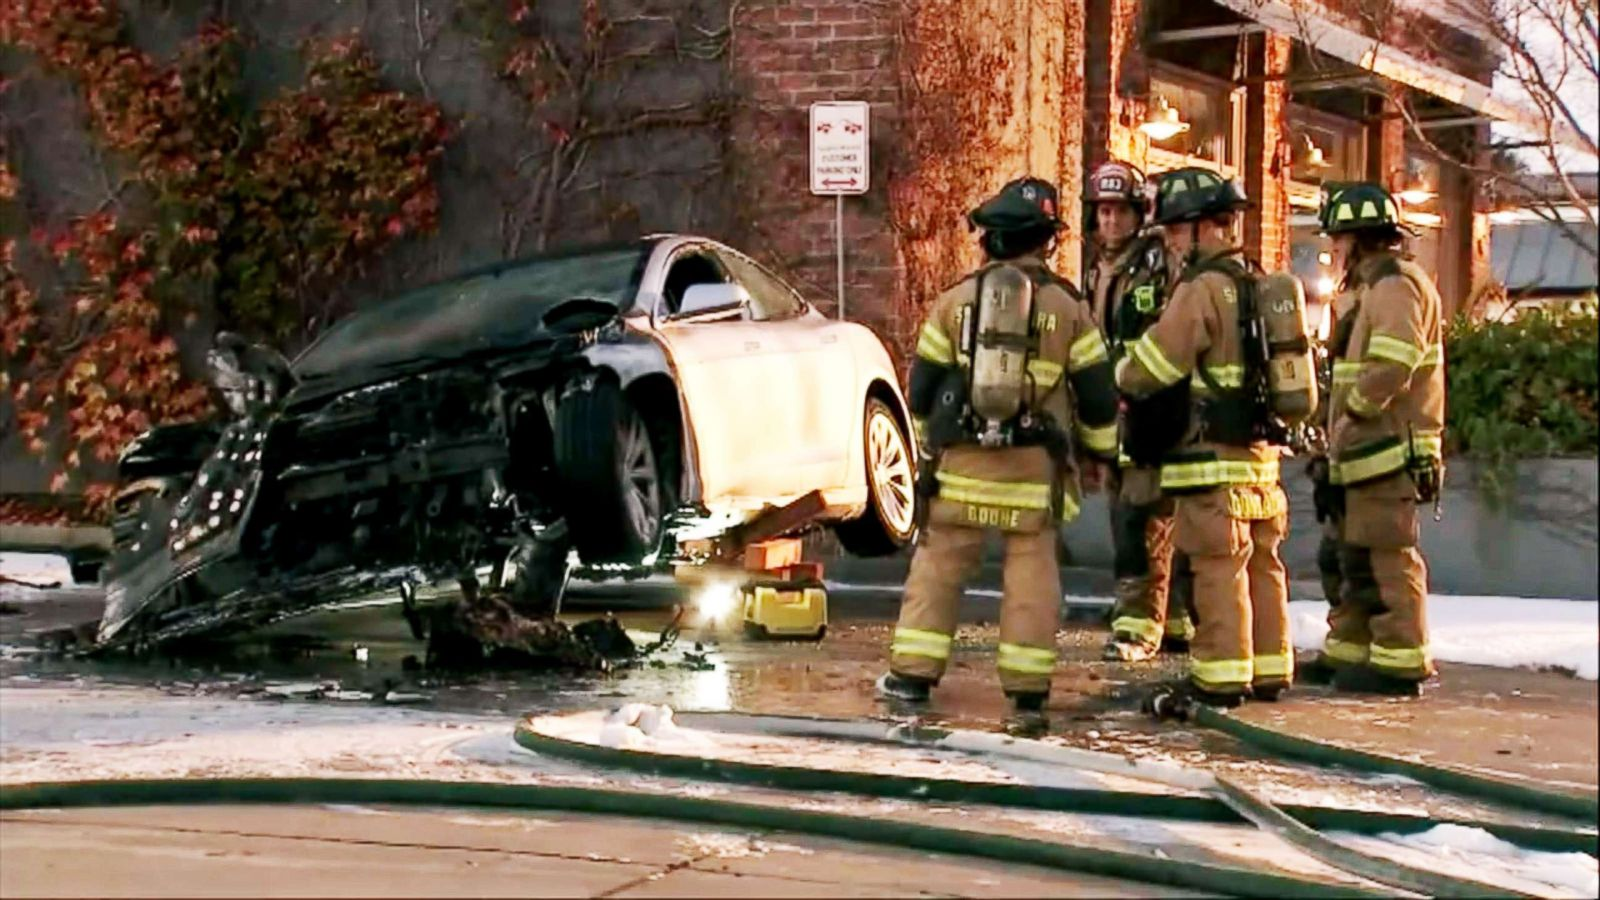 Firefighters work 16 hours to put out fires in Tesla Model S